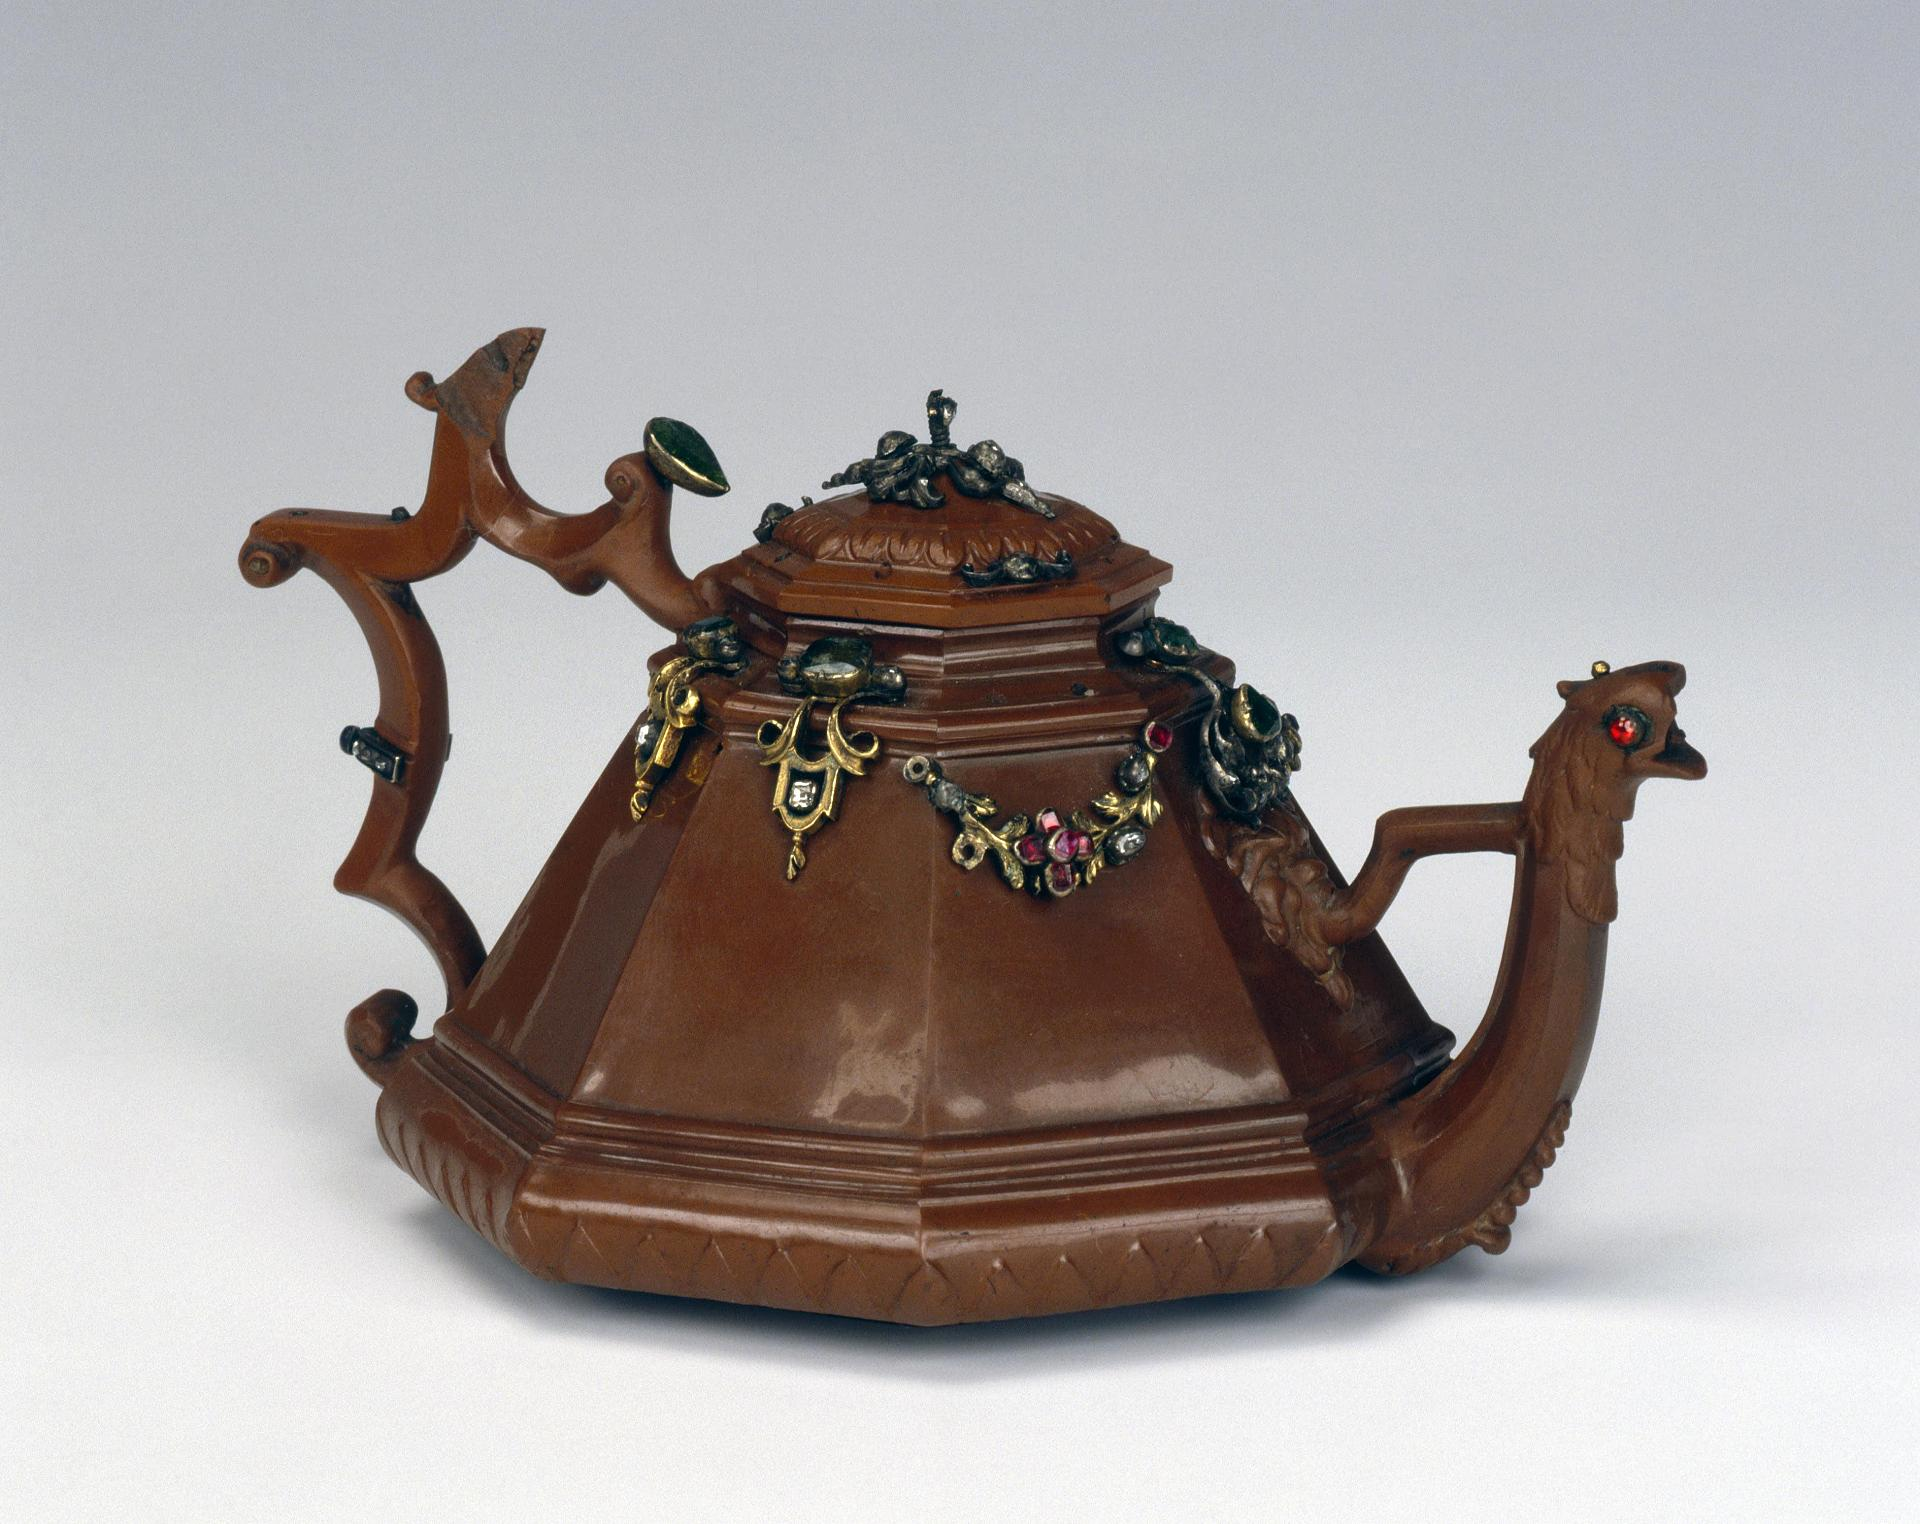 Teapot with lid, Germany, Meissen, 1711-1715, stone mass